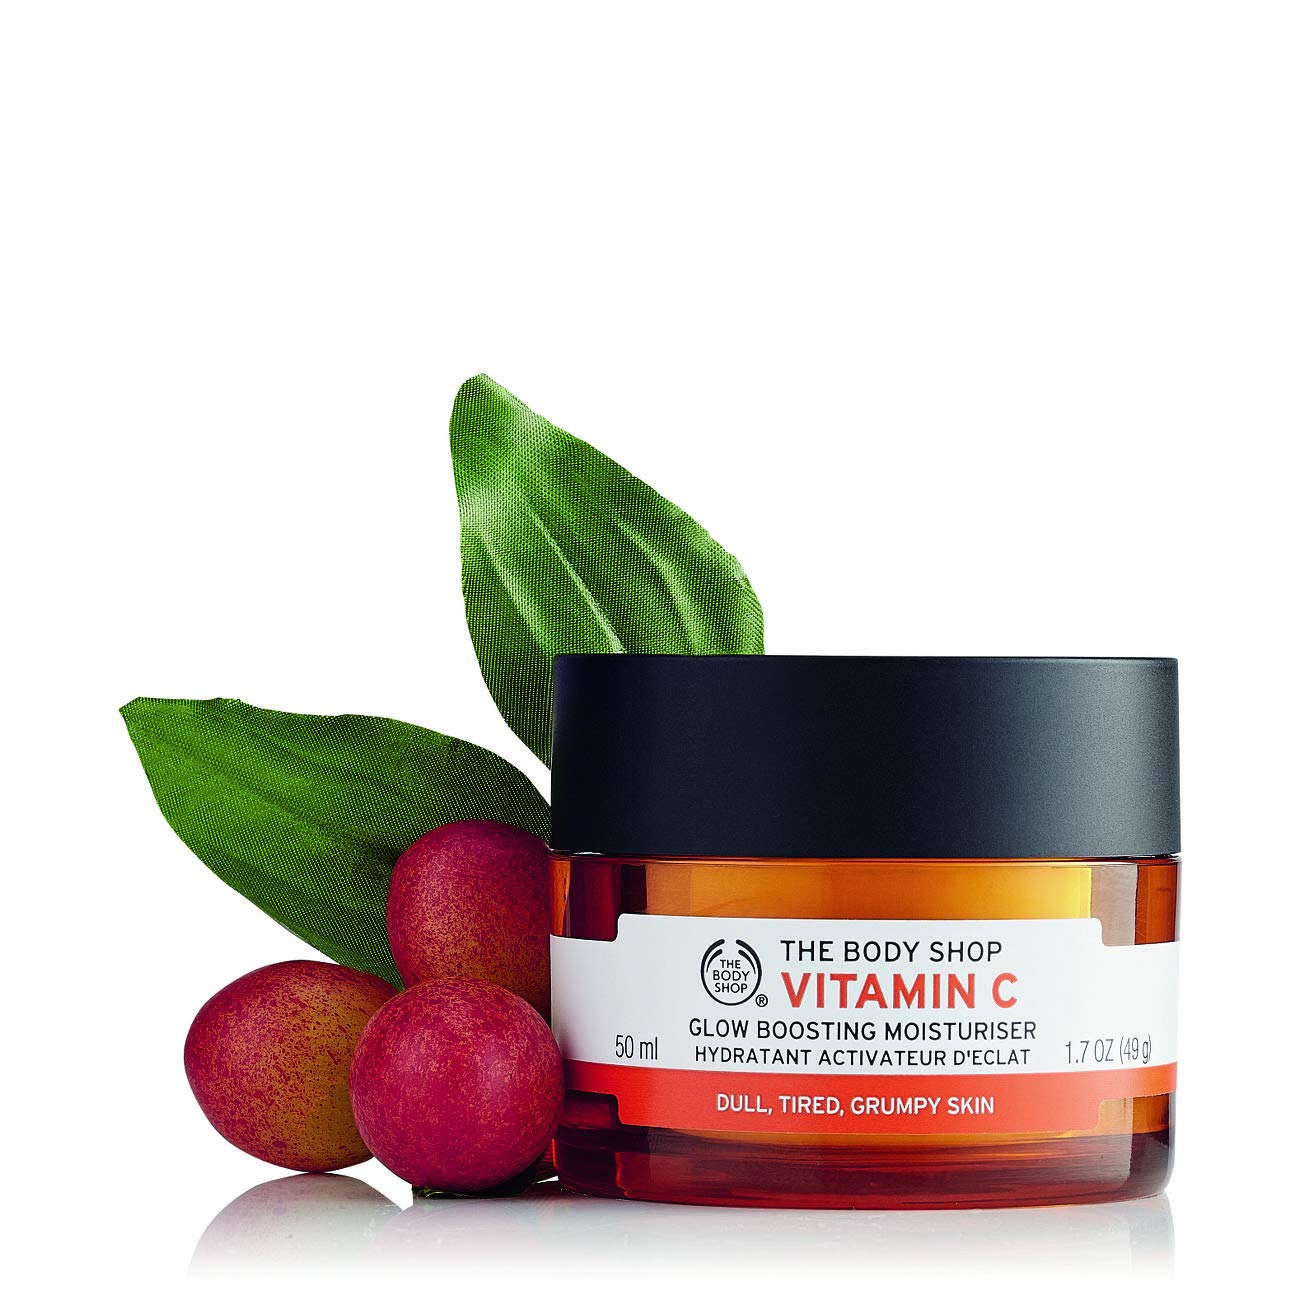 The Body Shop 1080375 Vitamin C Glow Boosting Moisturizer, 1.7 Oz